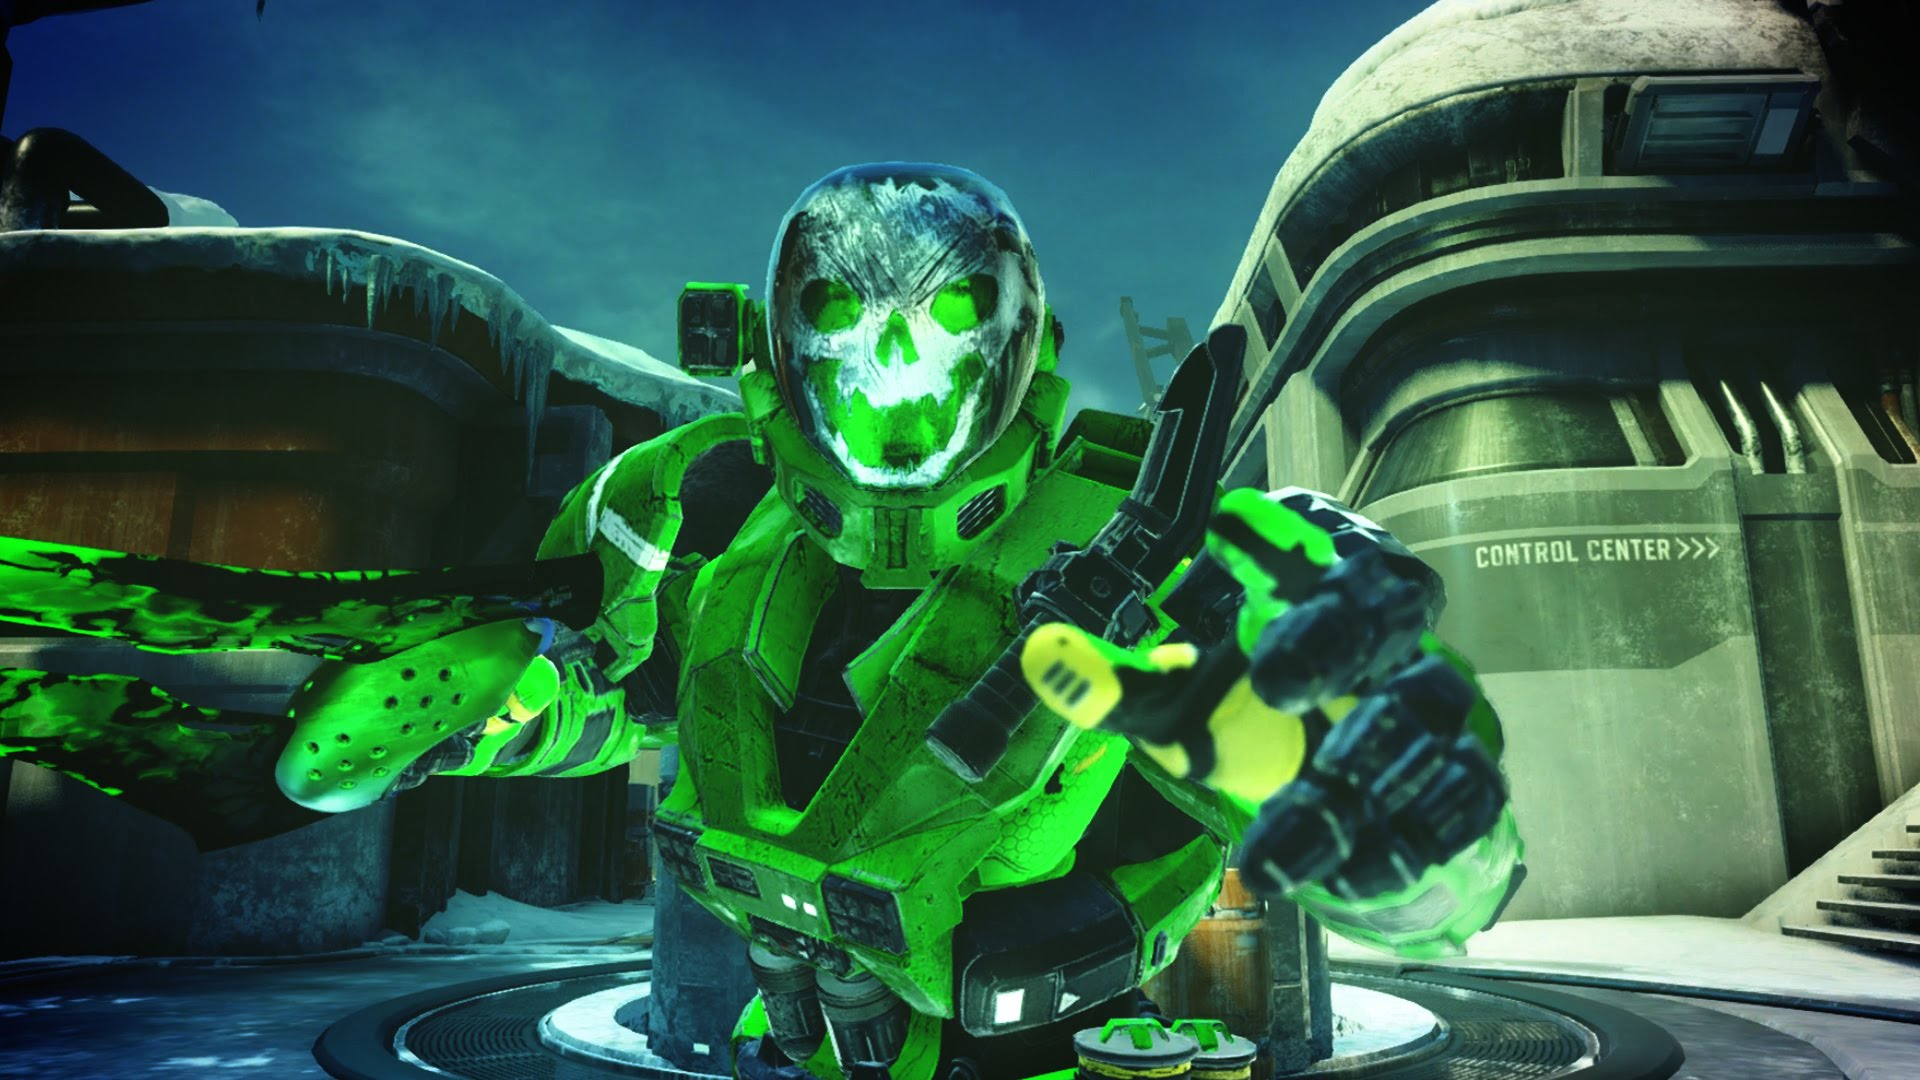 Ps4 Wallpaper Hd Halo 5 Guardians Celebrates Halloween With Infection